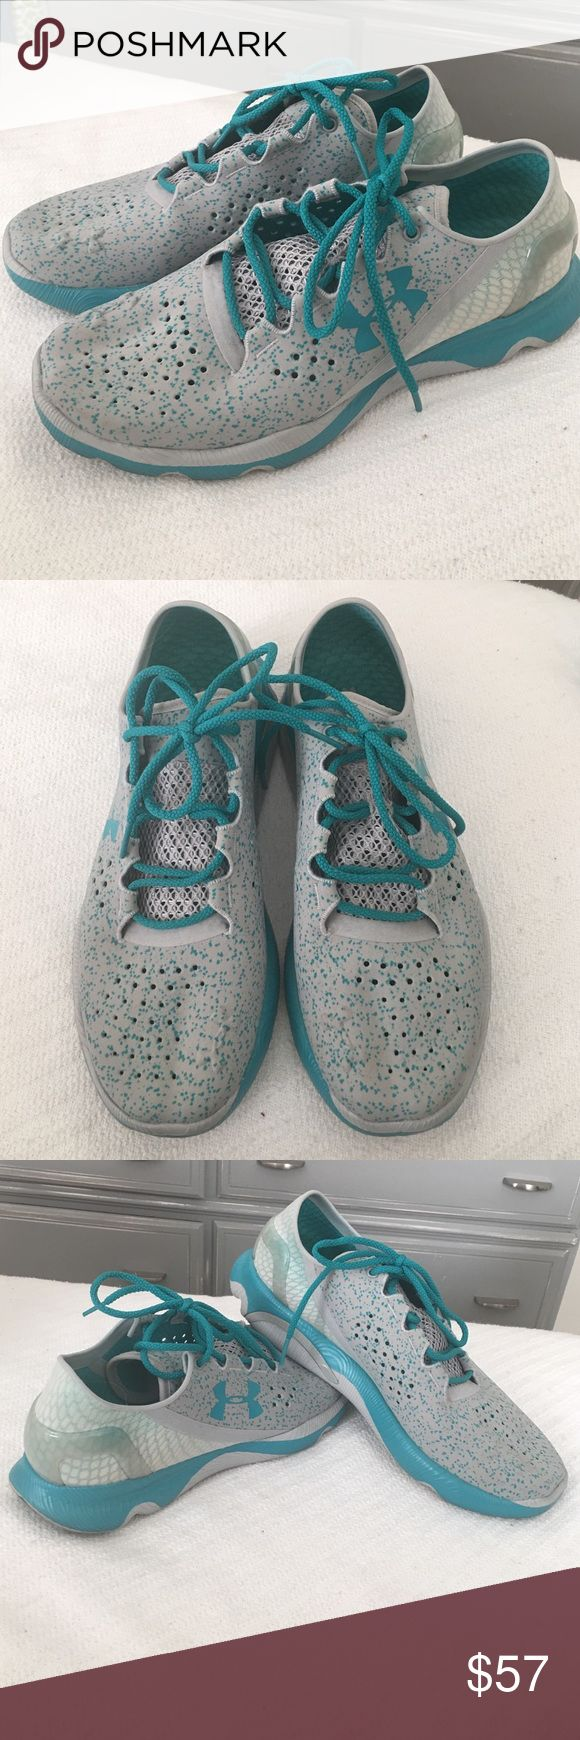 Women's Under Armour Tennis Shoes Grey/Teal Under Armour Women's tennis shoes worn once and super cute and cool color, grey/real. No stains/rips. Great Condition Under Armour Shoes Athletic Shoes